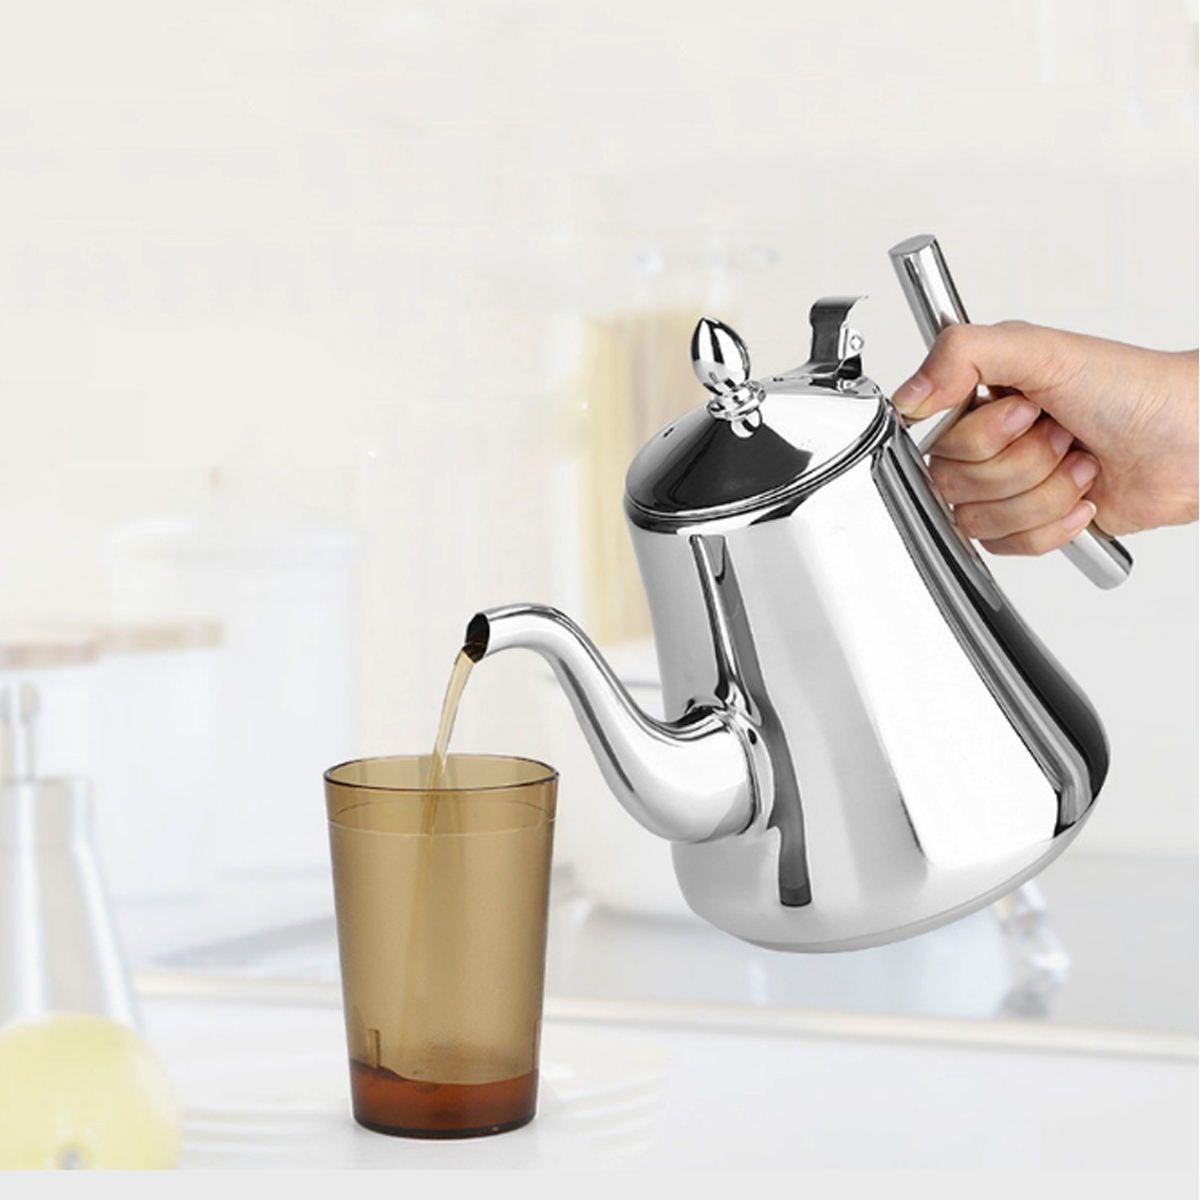 1L/1.5L Stainless Steel Kitchen Tea Pot Coffee Pot Water Kettle WithTea Infuser Strainer Filter